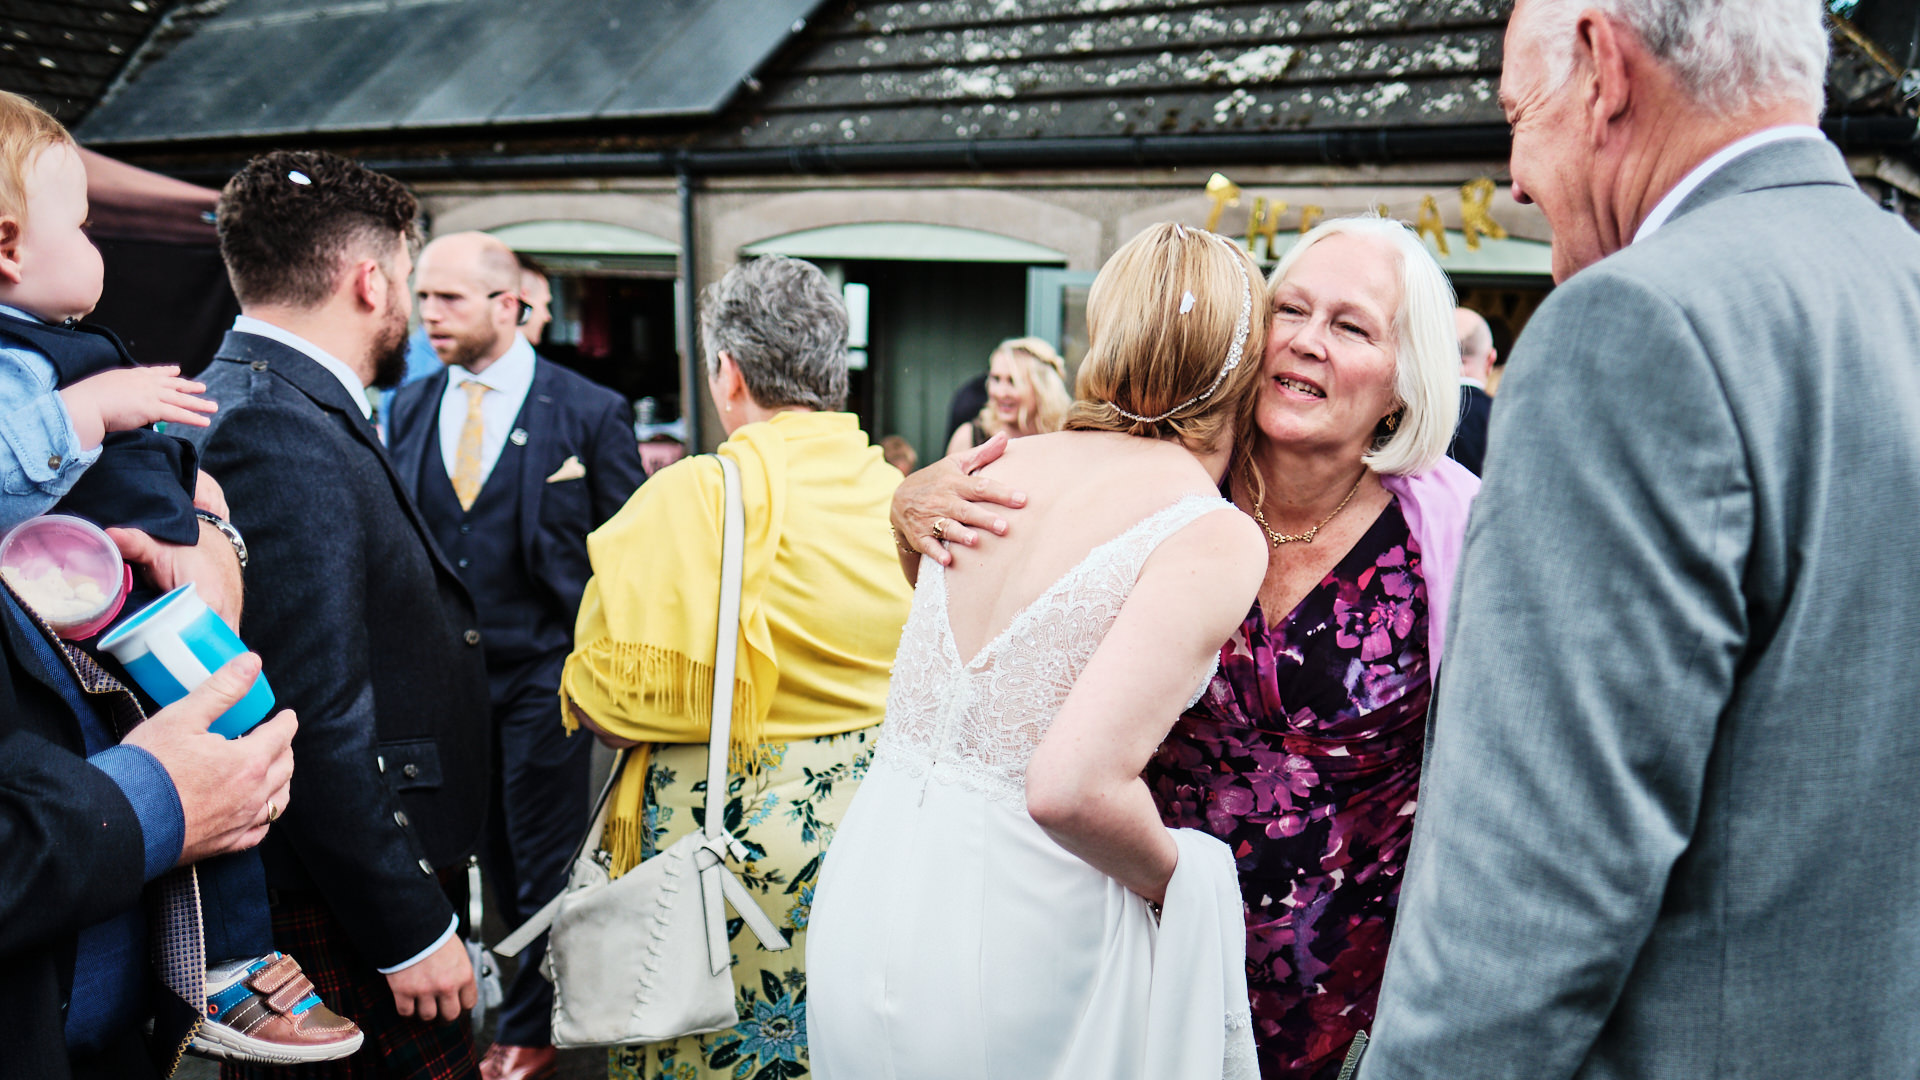 colour photograph of the bride hugging an older woman during her wedding day